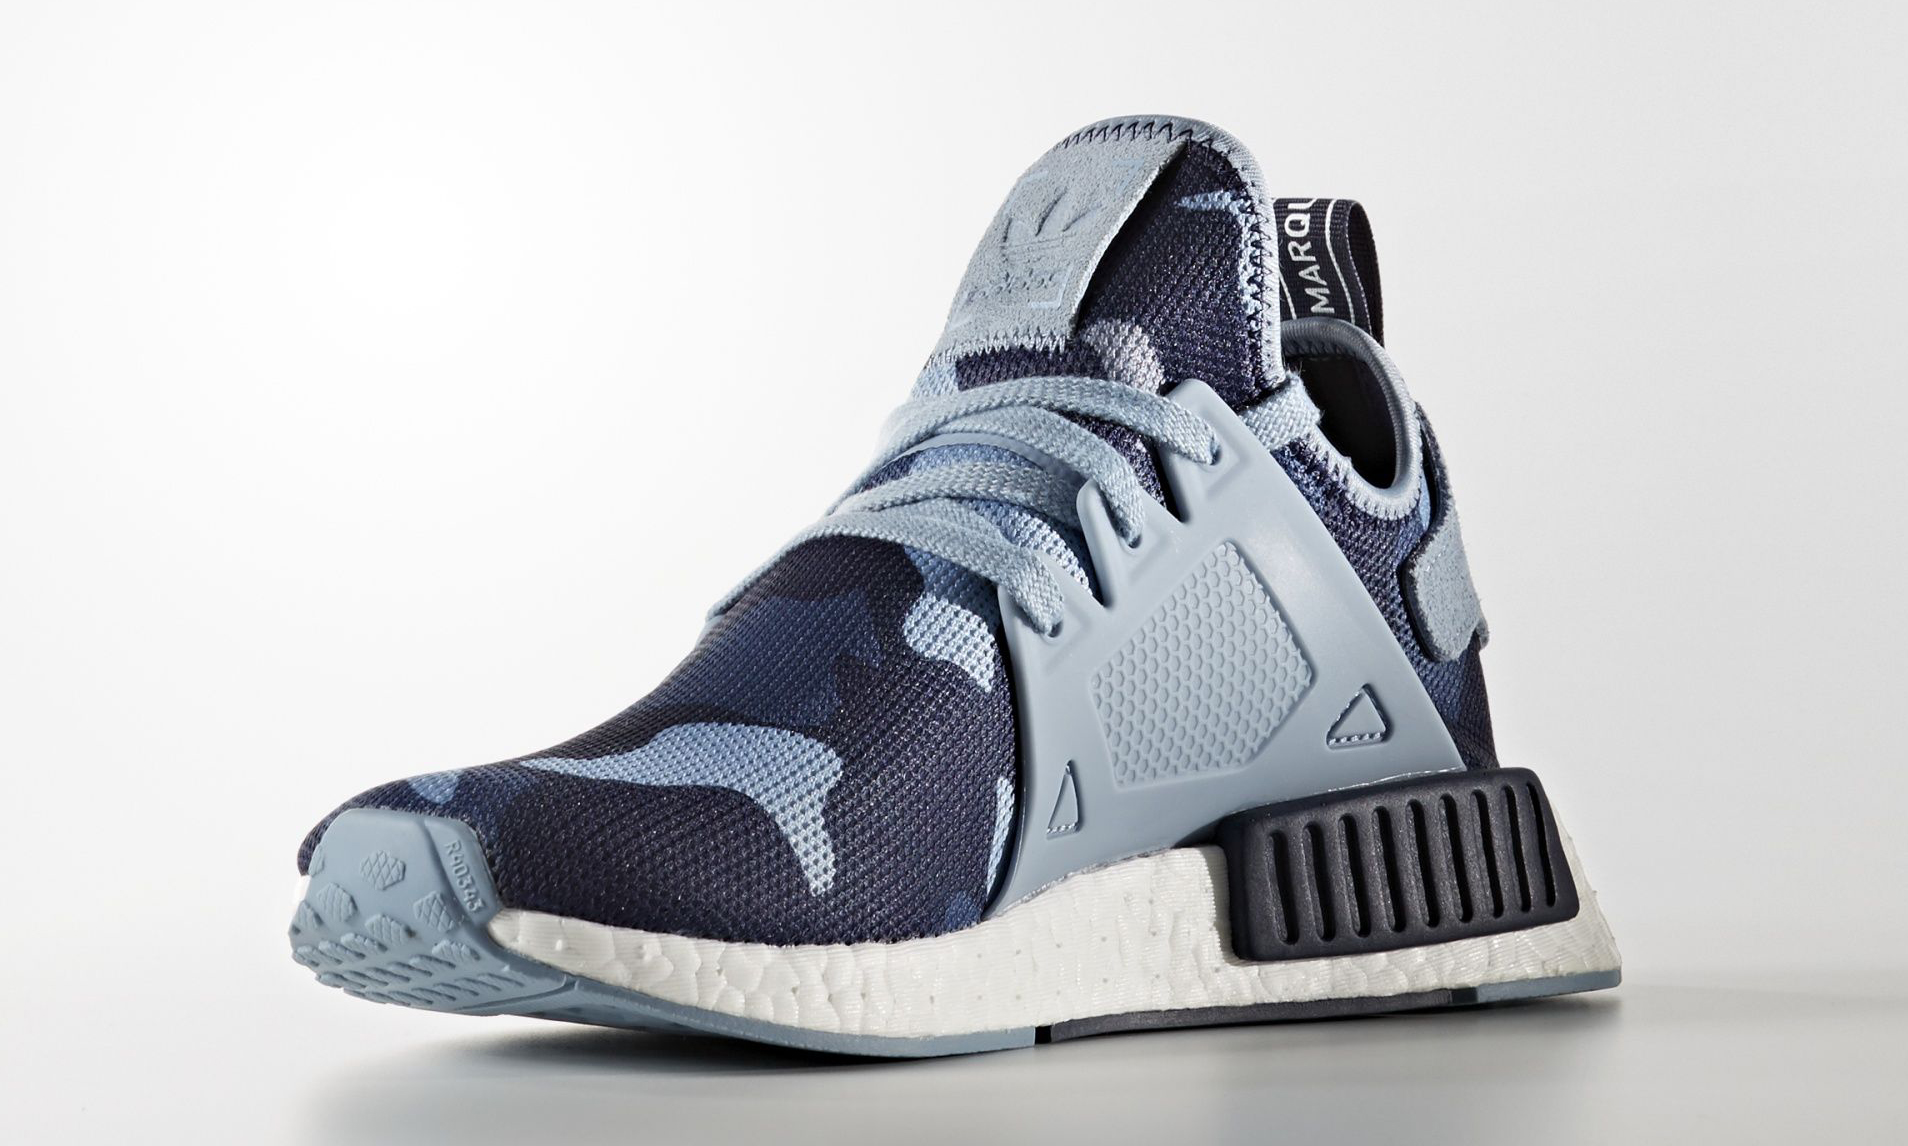 Adidas NMD XR1 PK (Black/White/Red) S32216 hkmenshoes